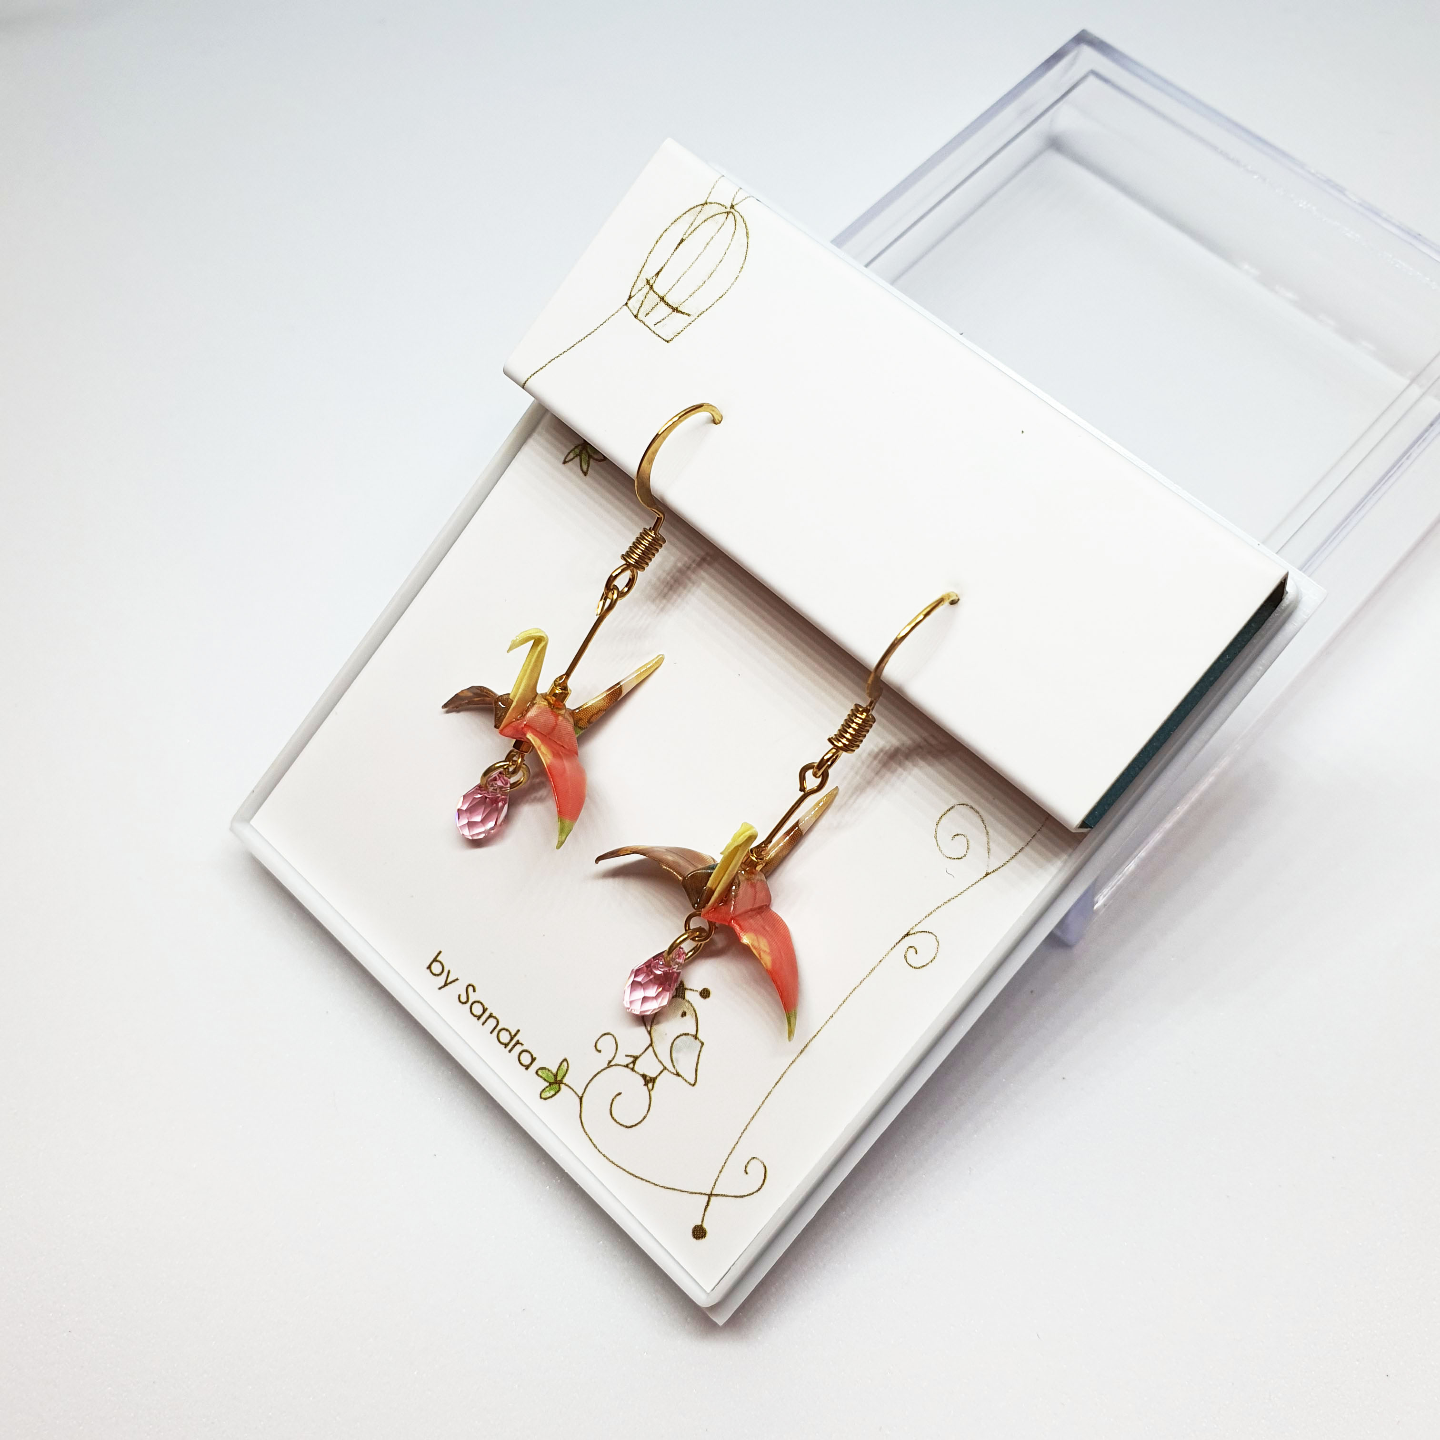 Fashion Accessories  Paper Crane Earrings Red by Sandra My Paper Earrings